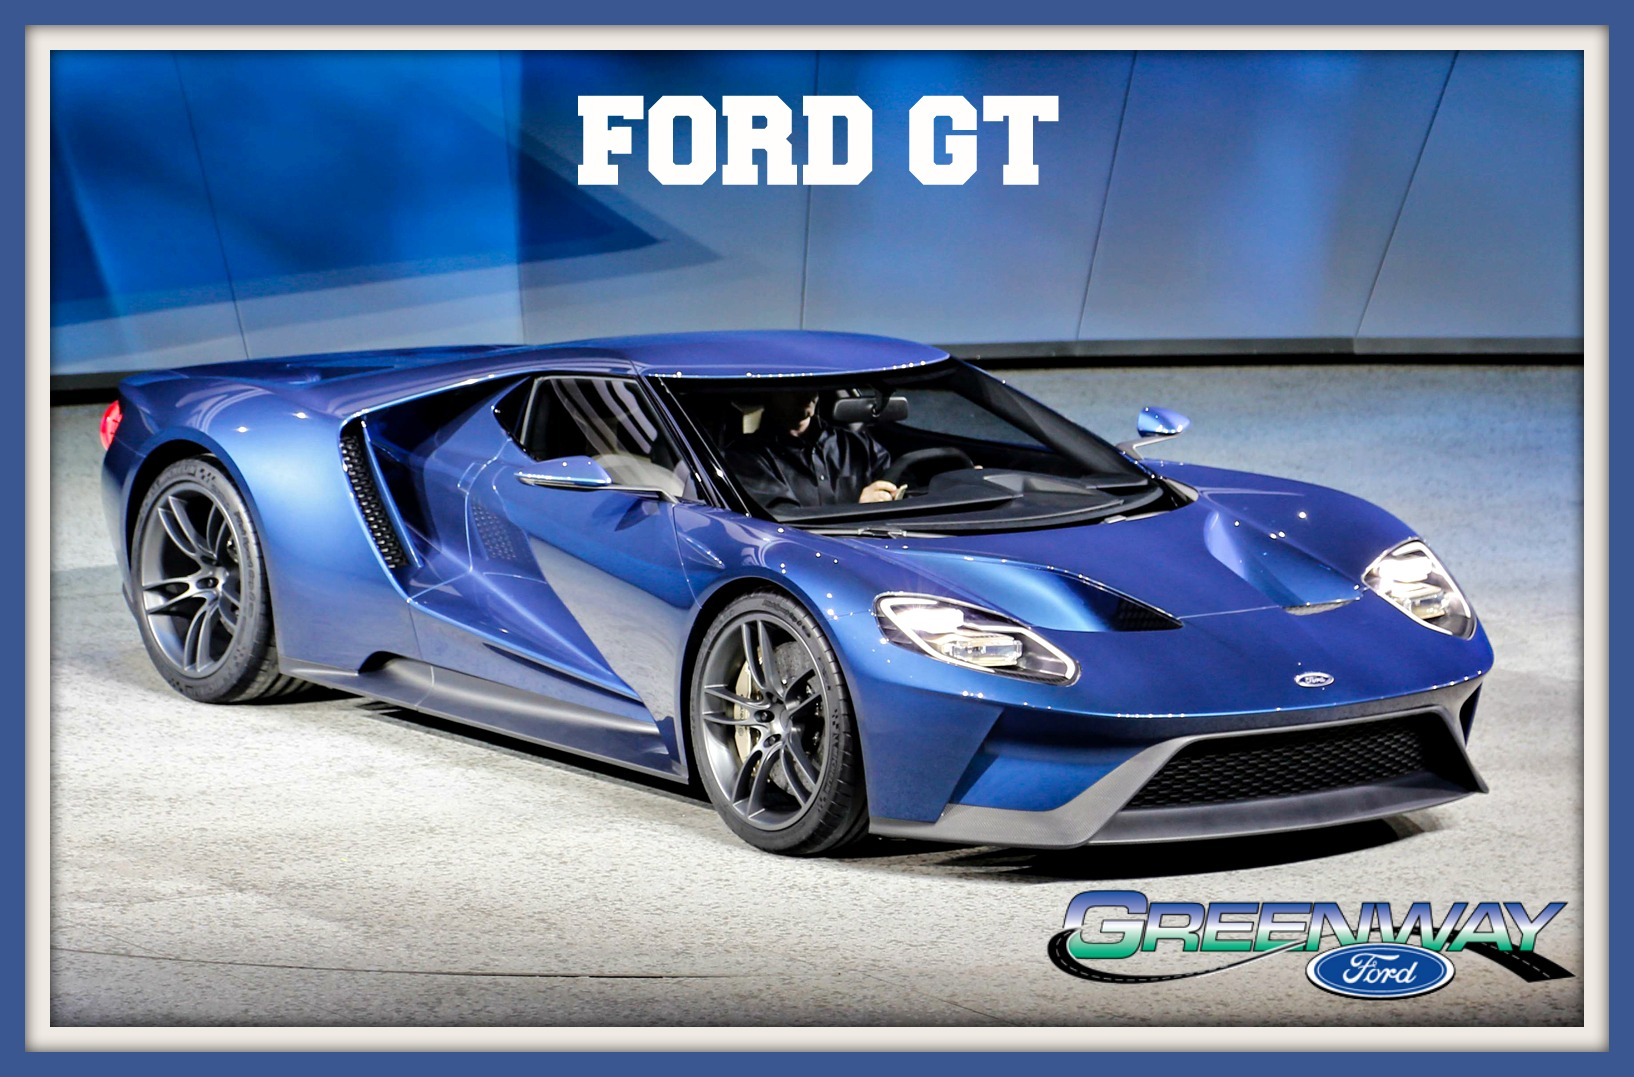 passenger side view of the Ford GT at our Orlando FL Ford dealership